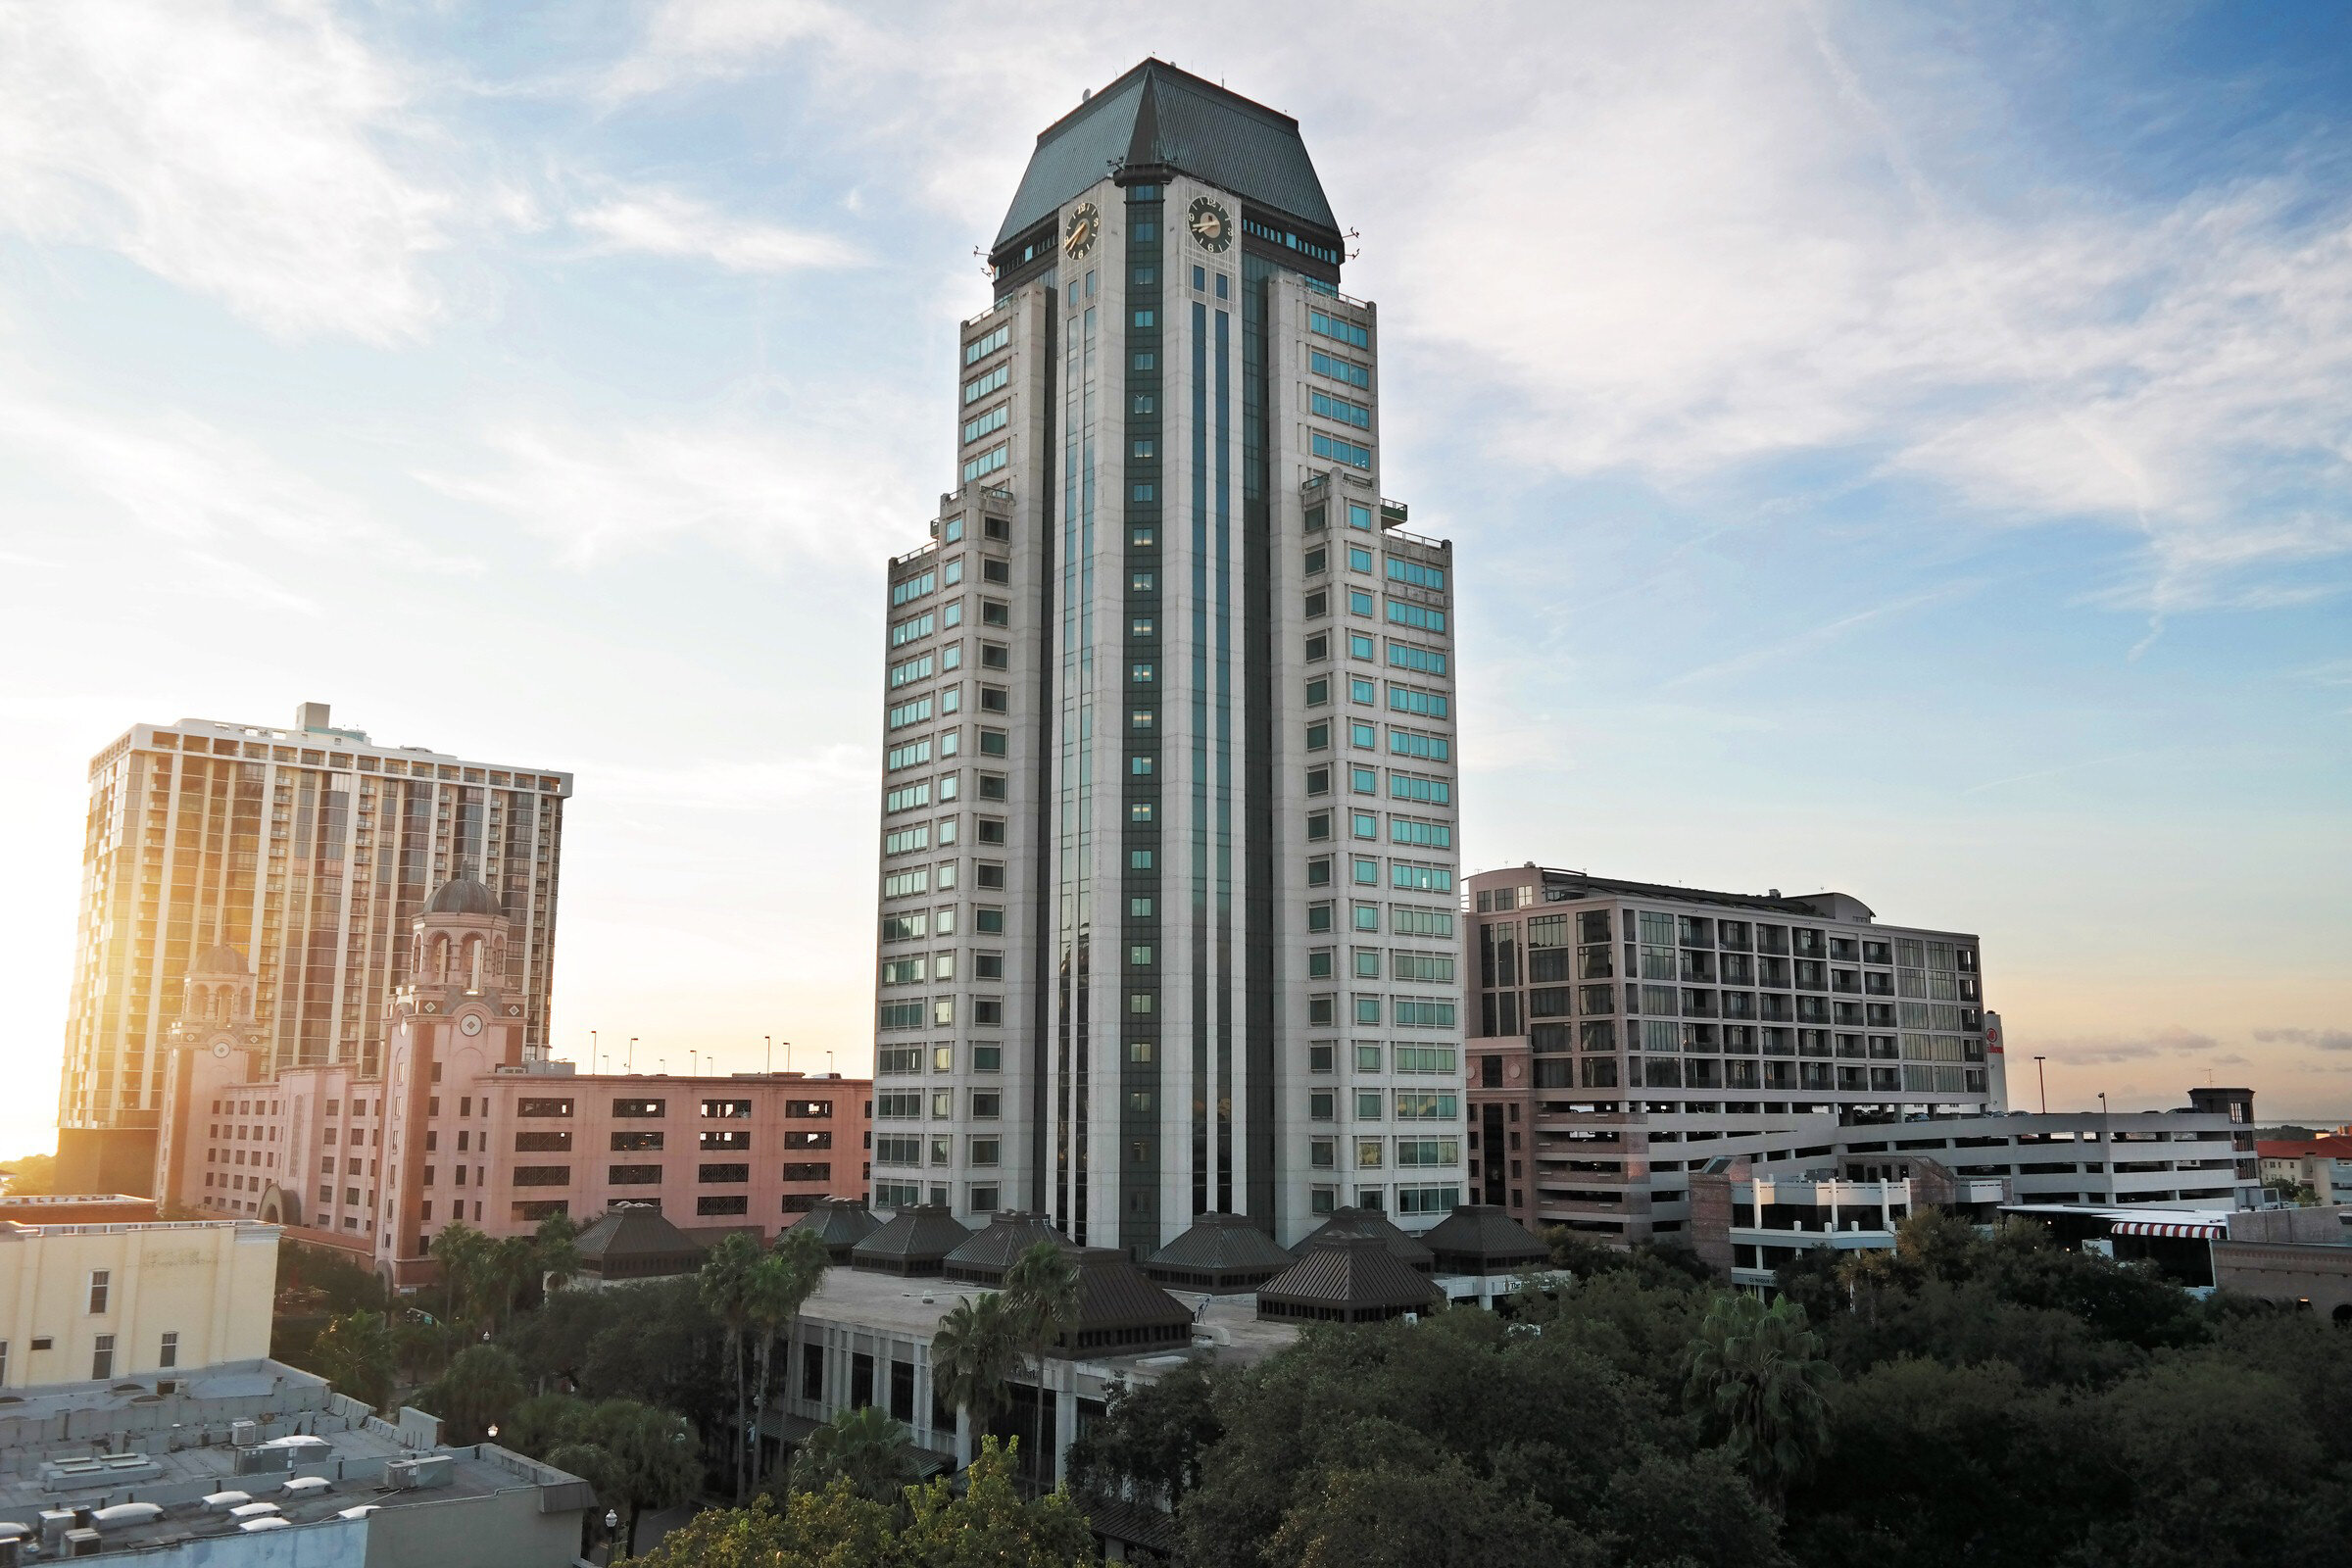 200 Central, a 26-story office tower, located at 200 Central Avenue is the tallest office building in St. Petersburg.